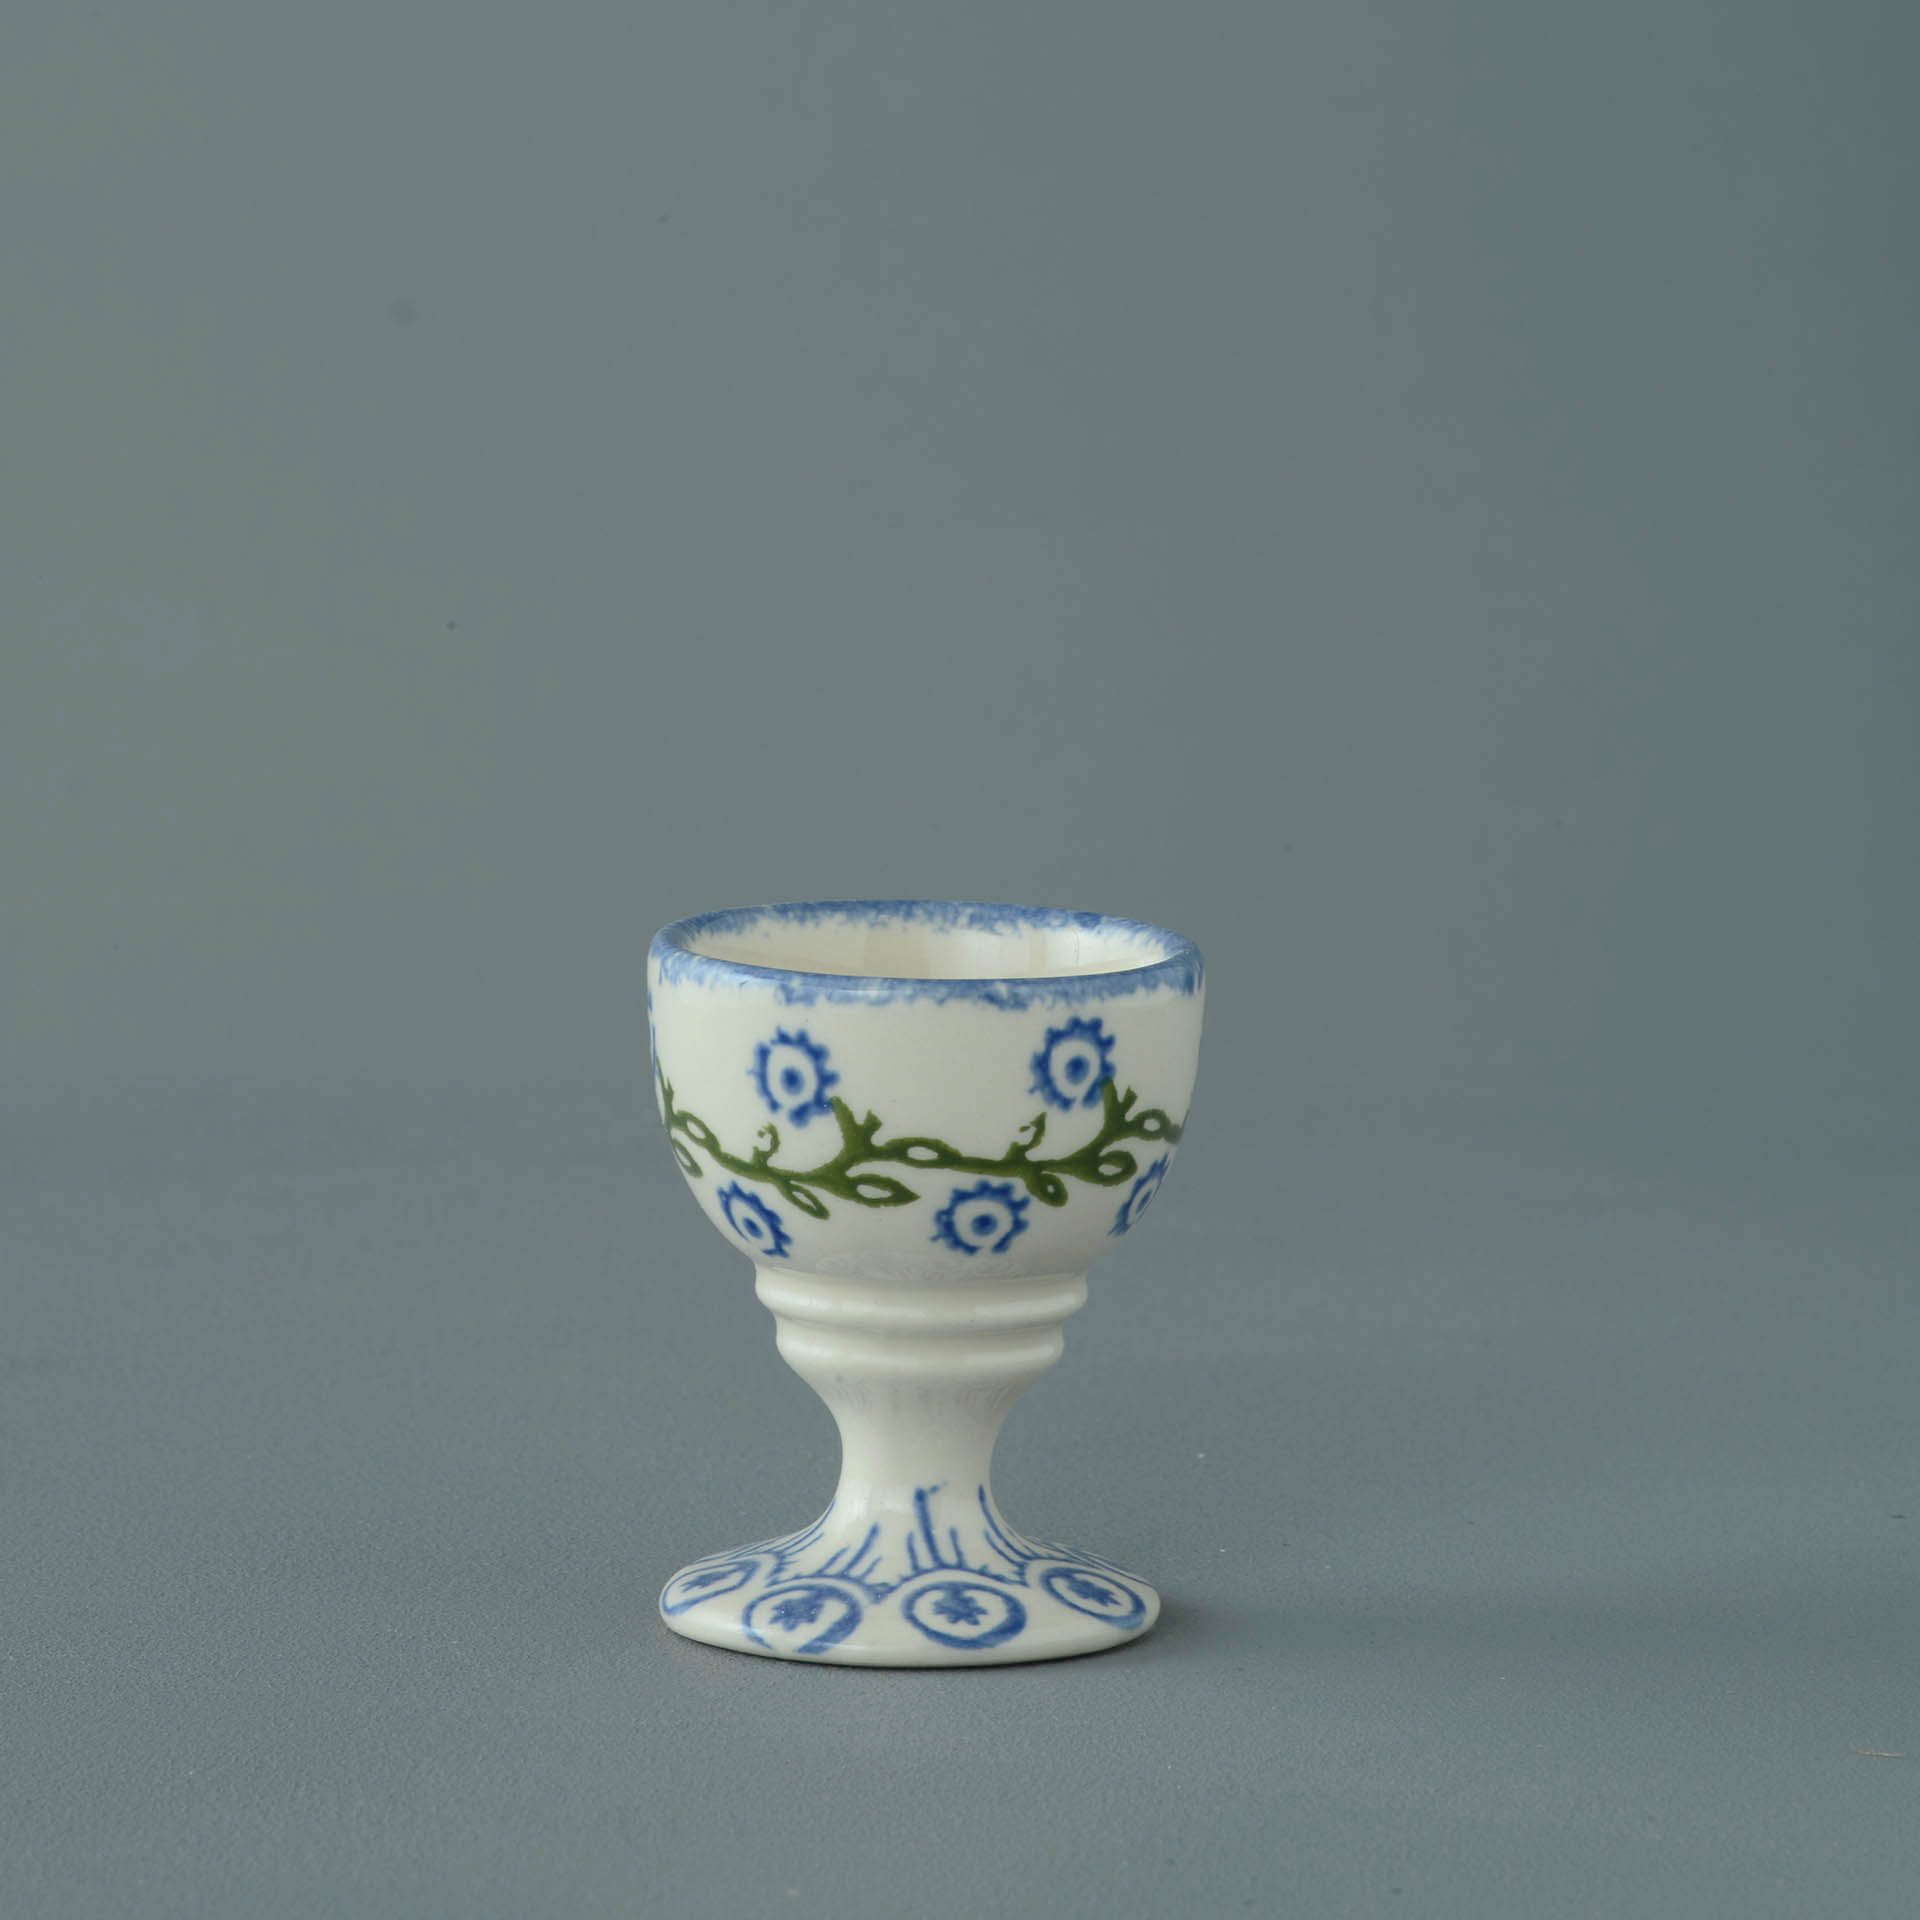 Floral Garland Egg cup 6.3 x 5.2cm